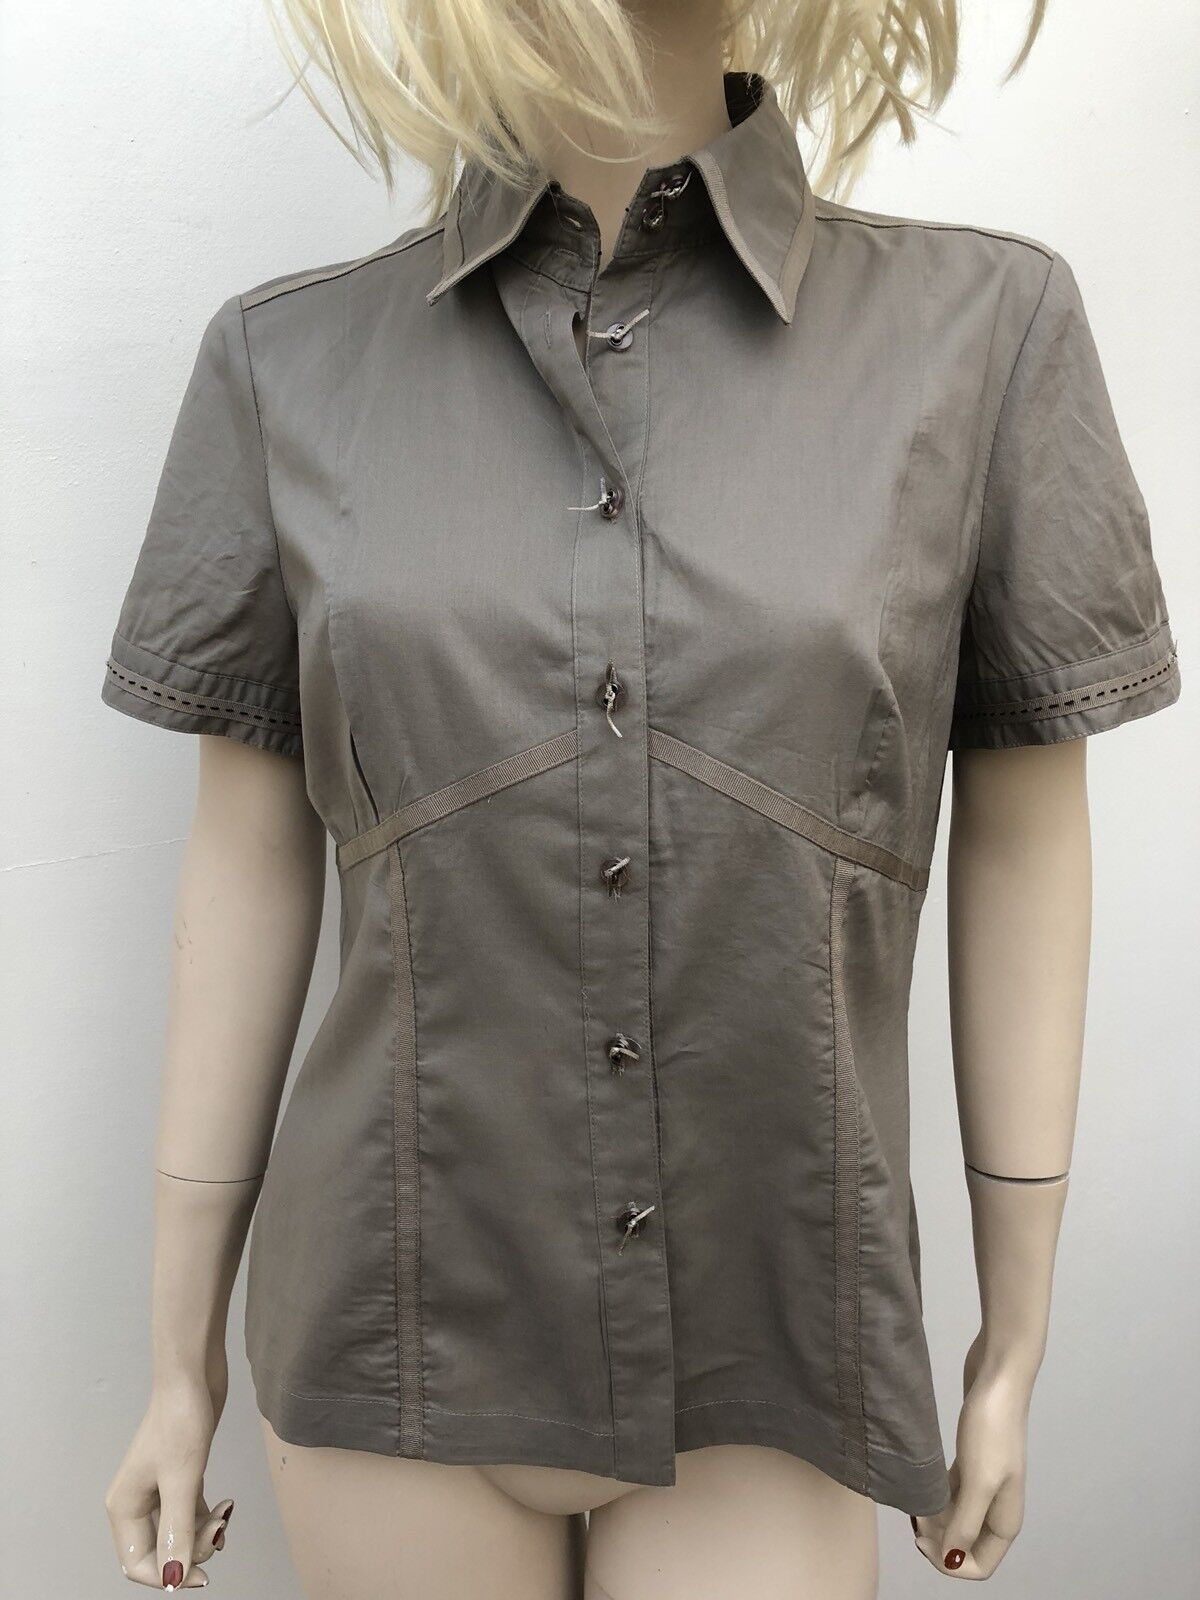 Linea Size 14 Blouse BNWT RRP  Natural Stone Beige Short Sleeve Top Shirt